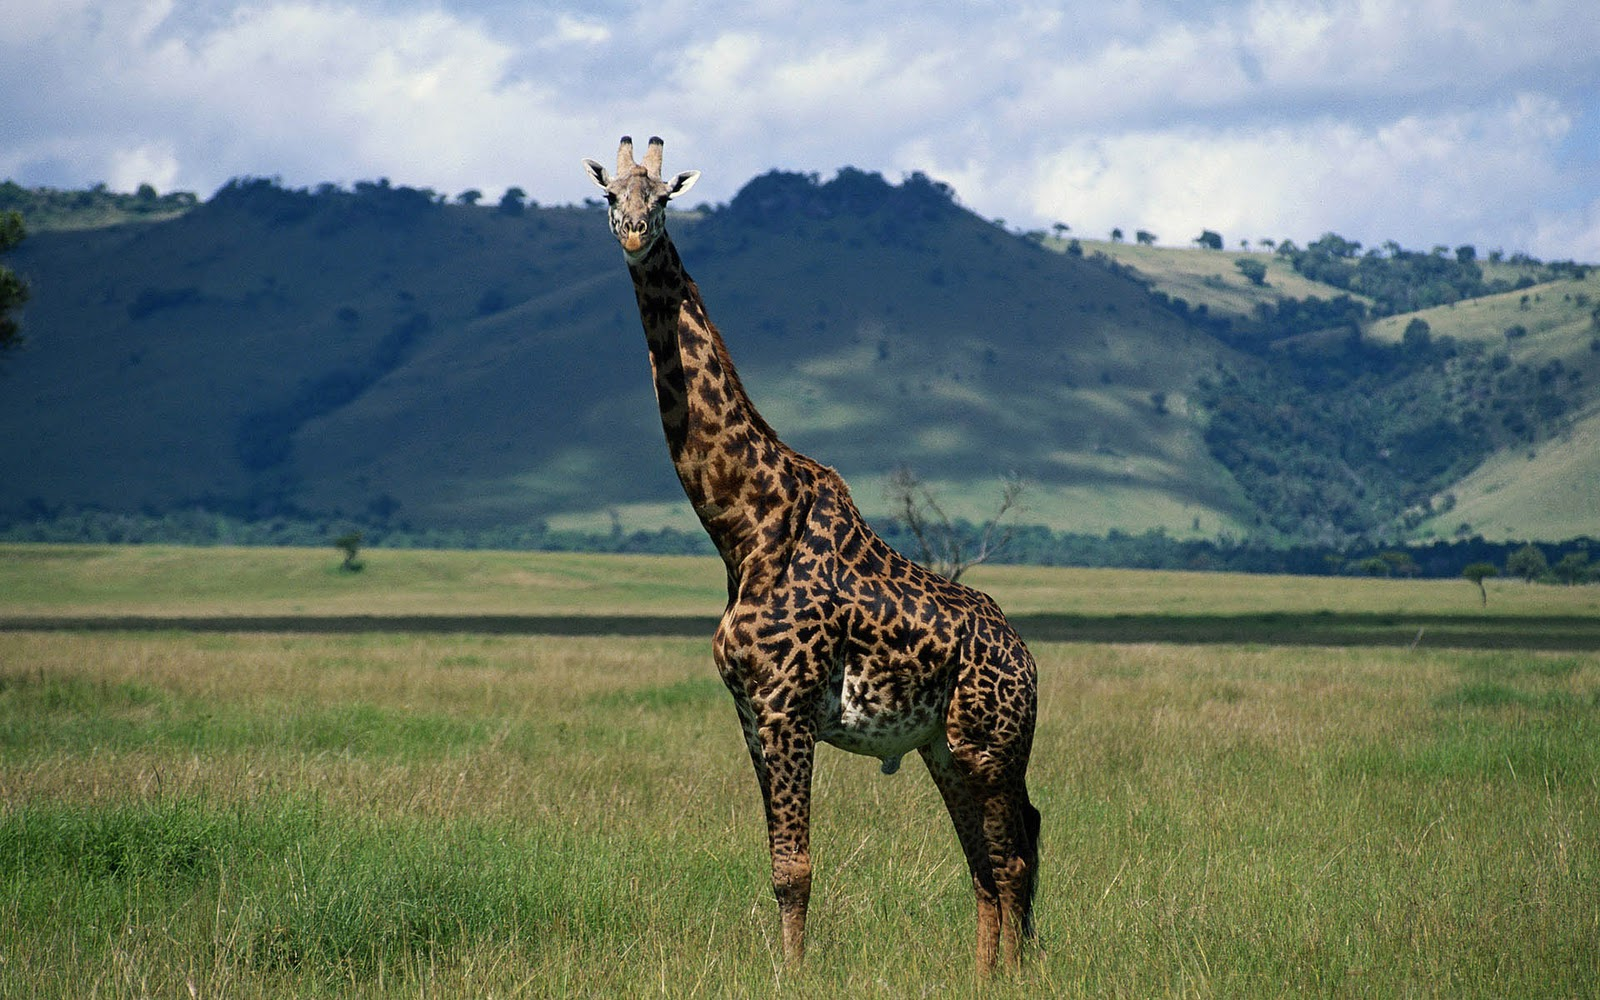 giraffe wallpapers hd pictures - photo #15